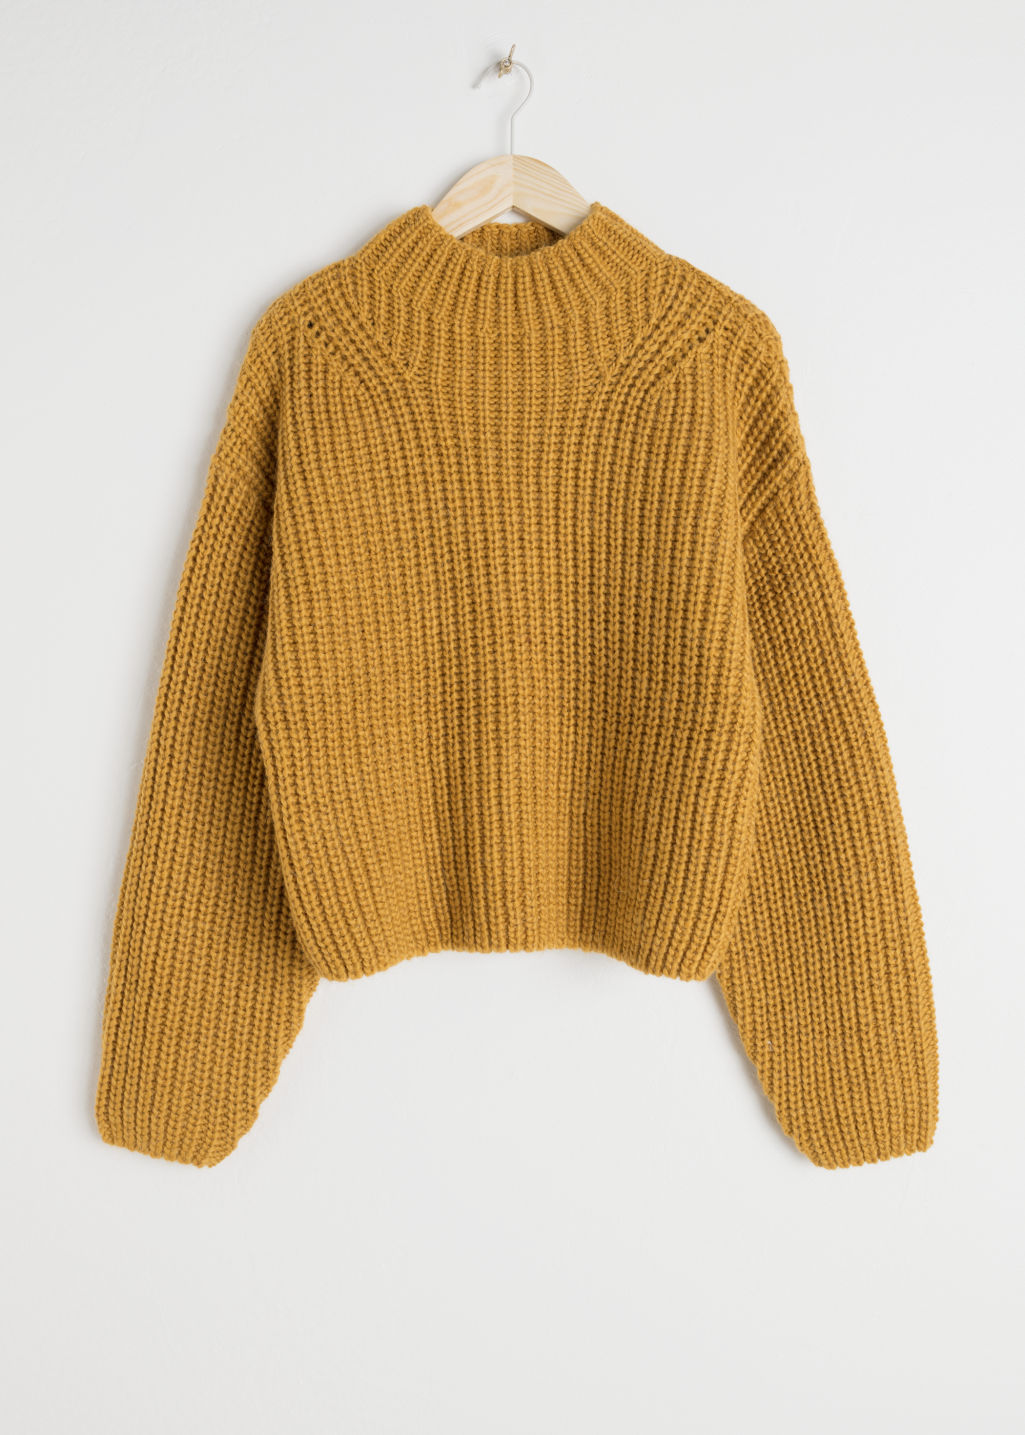 7d192d567d9 Oversized Chunky Knit Sweater - Mustard - Sweaters -   Other Stories